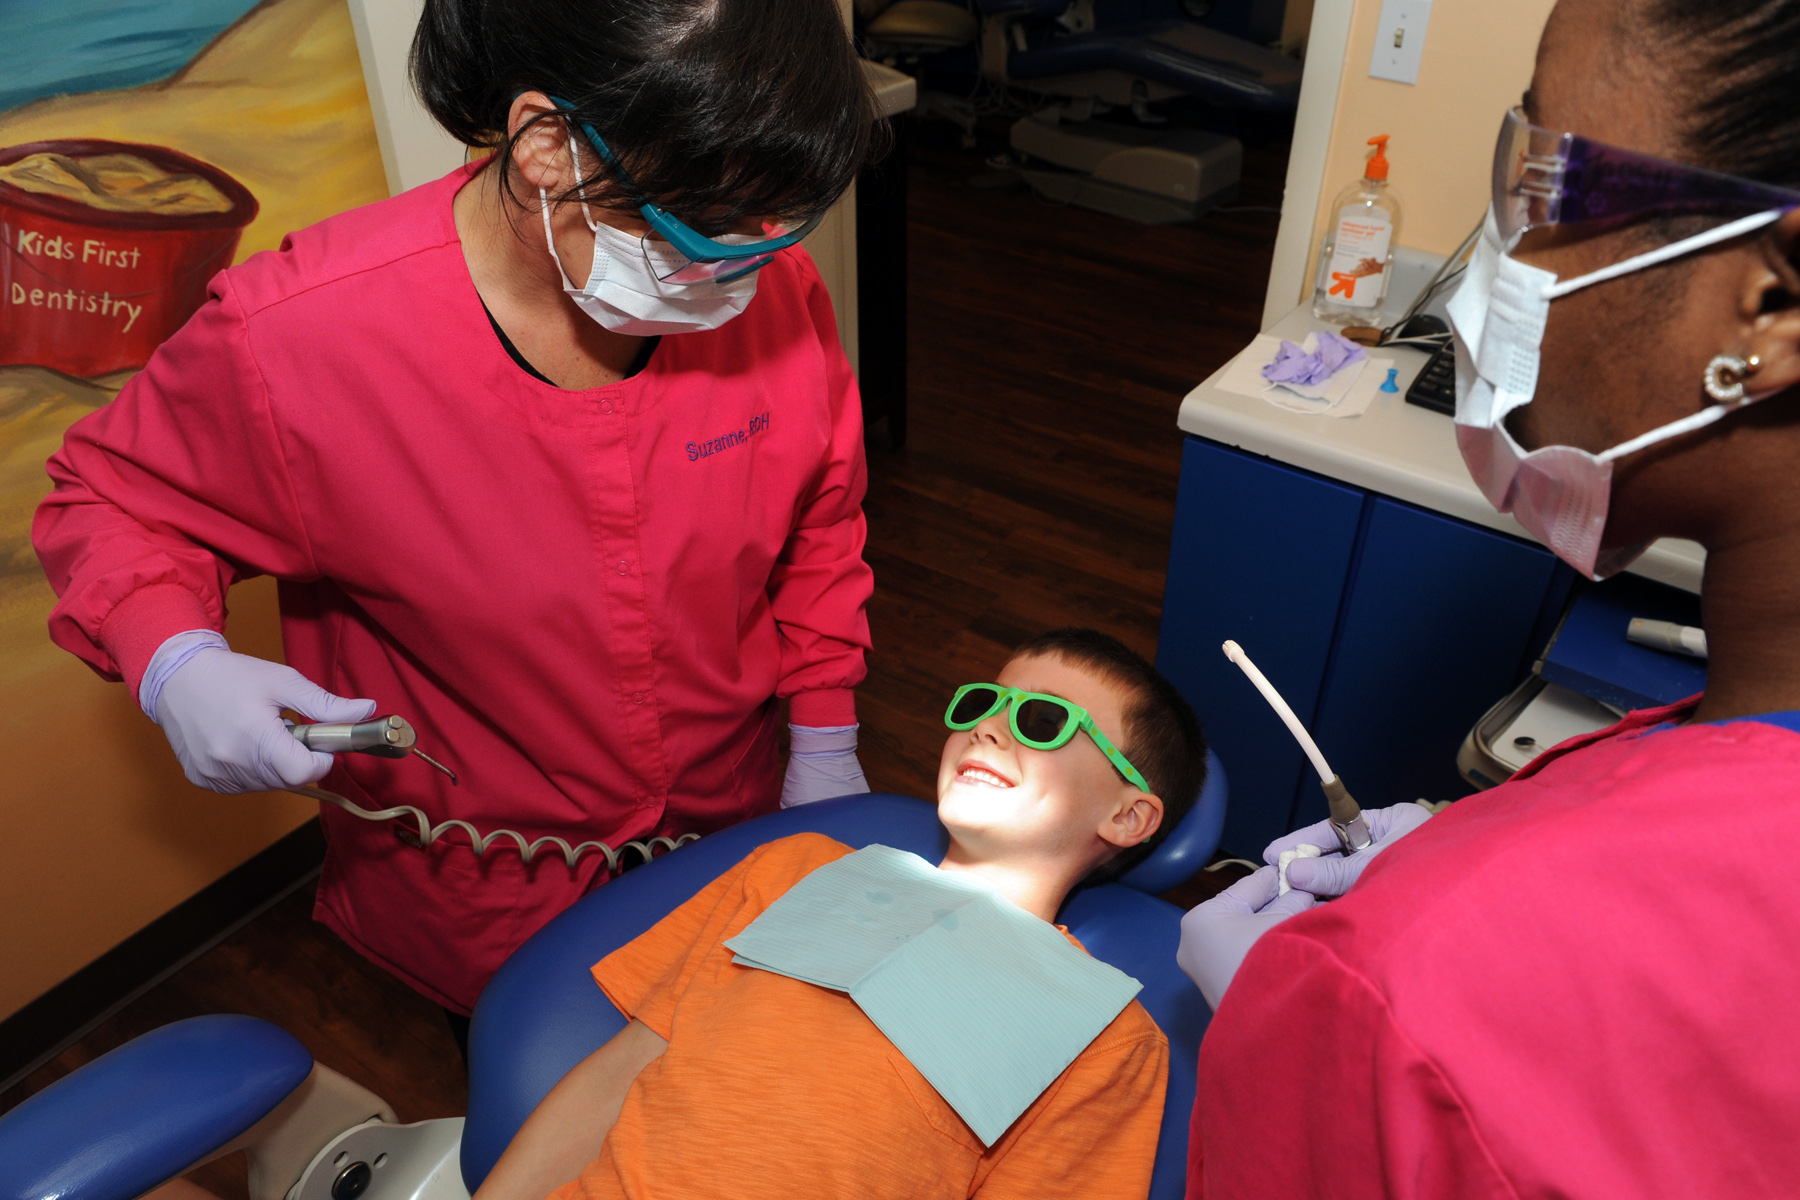 Pediatric dentistry offers special care for kids - Connecticut Post